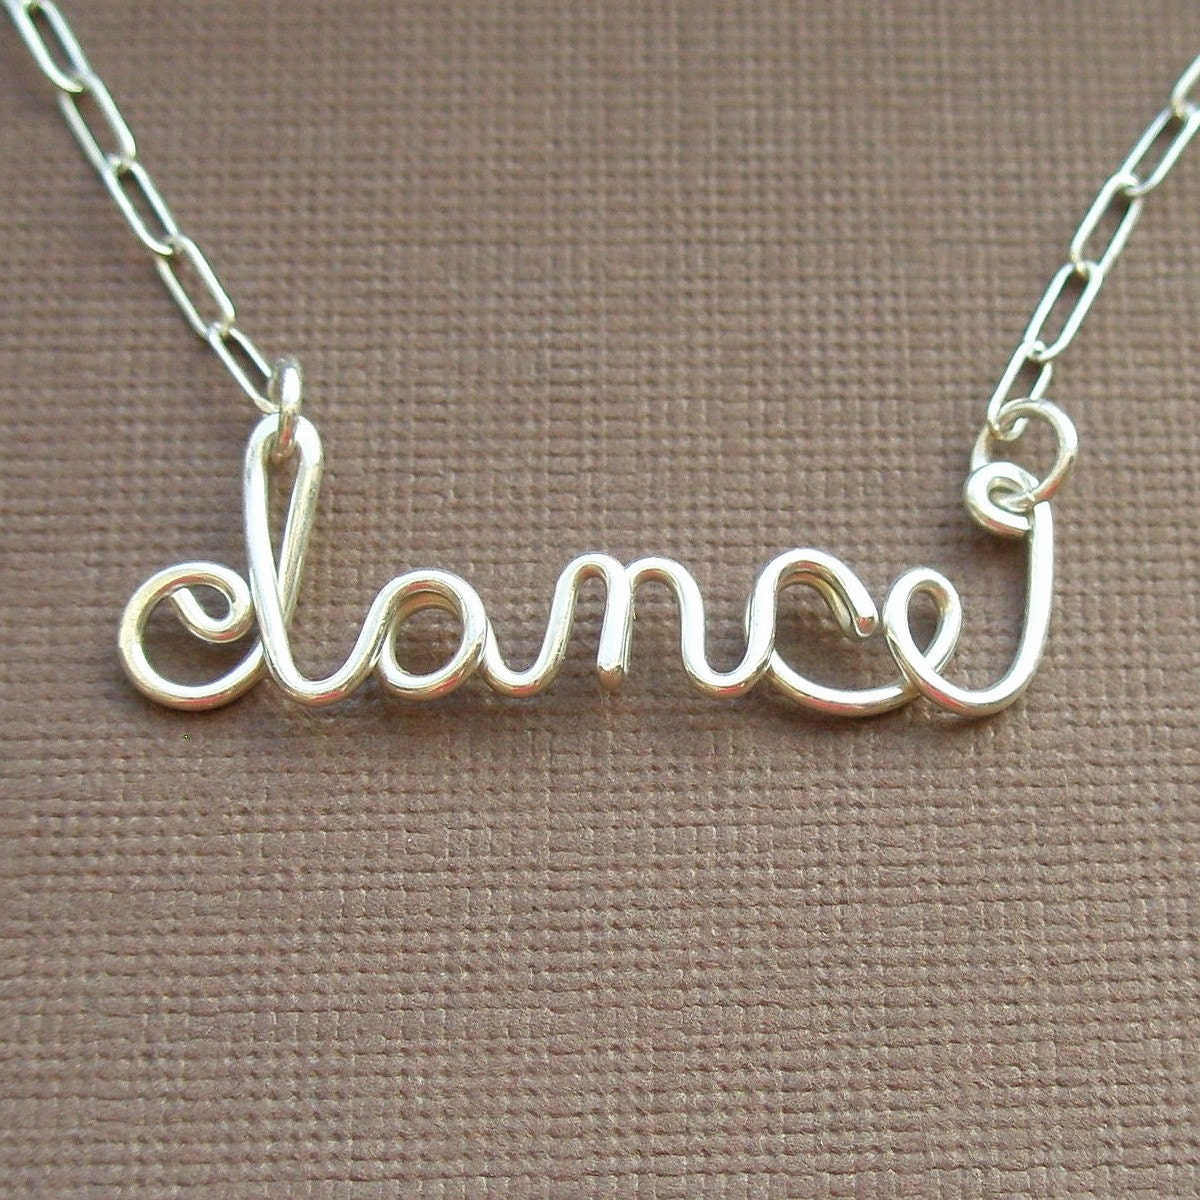 dance necklace - all sterling silver